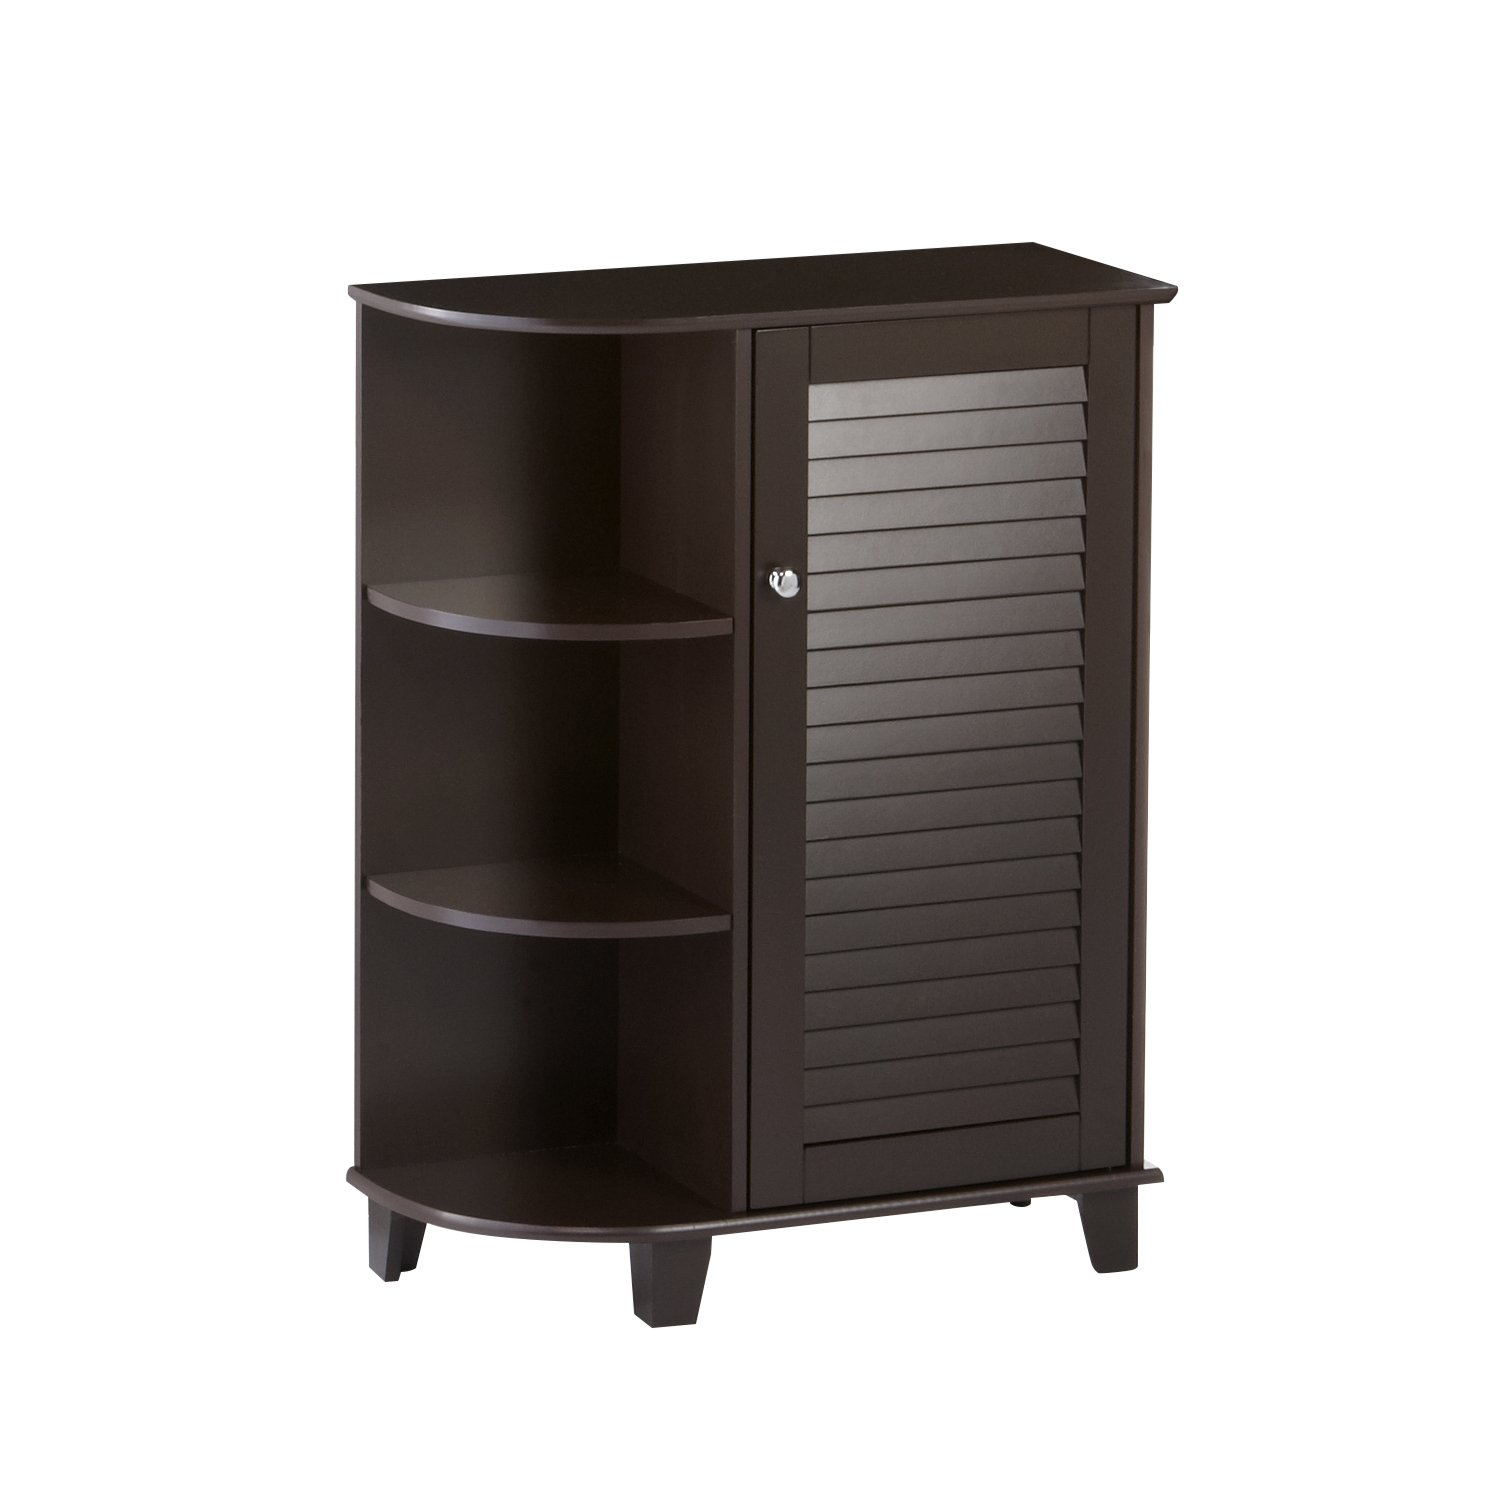 Amazon RiverRidge Home Ellsworth Floor Cabinet with Side